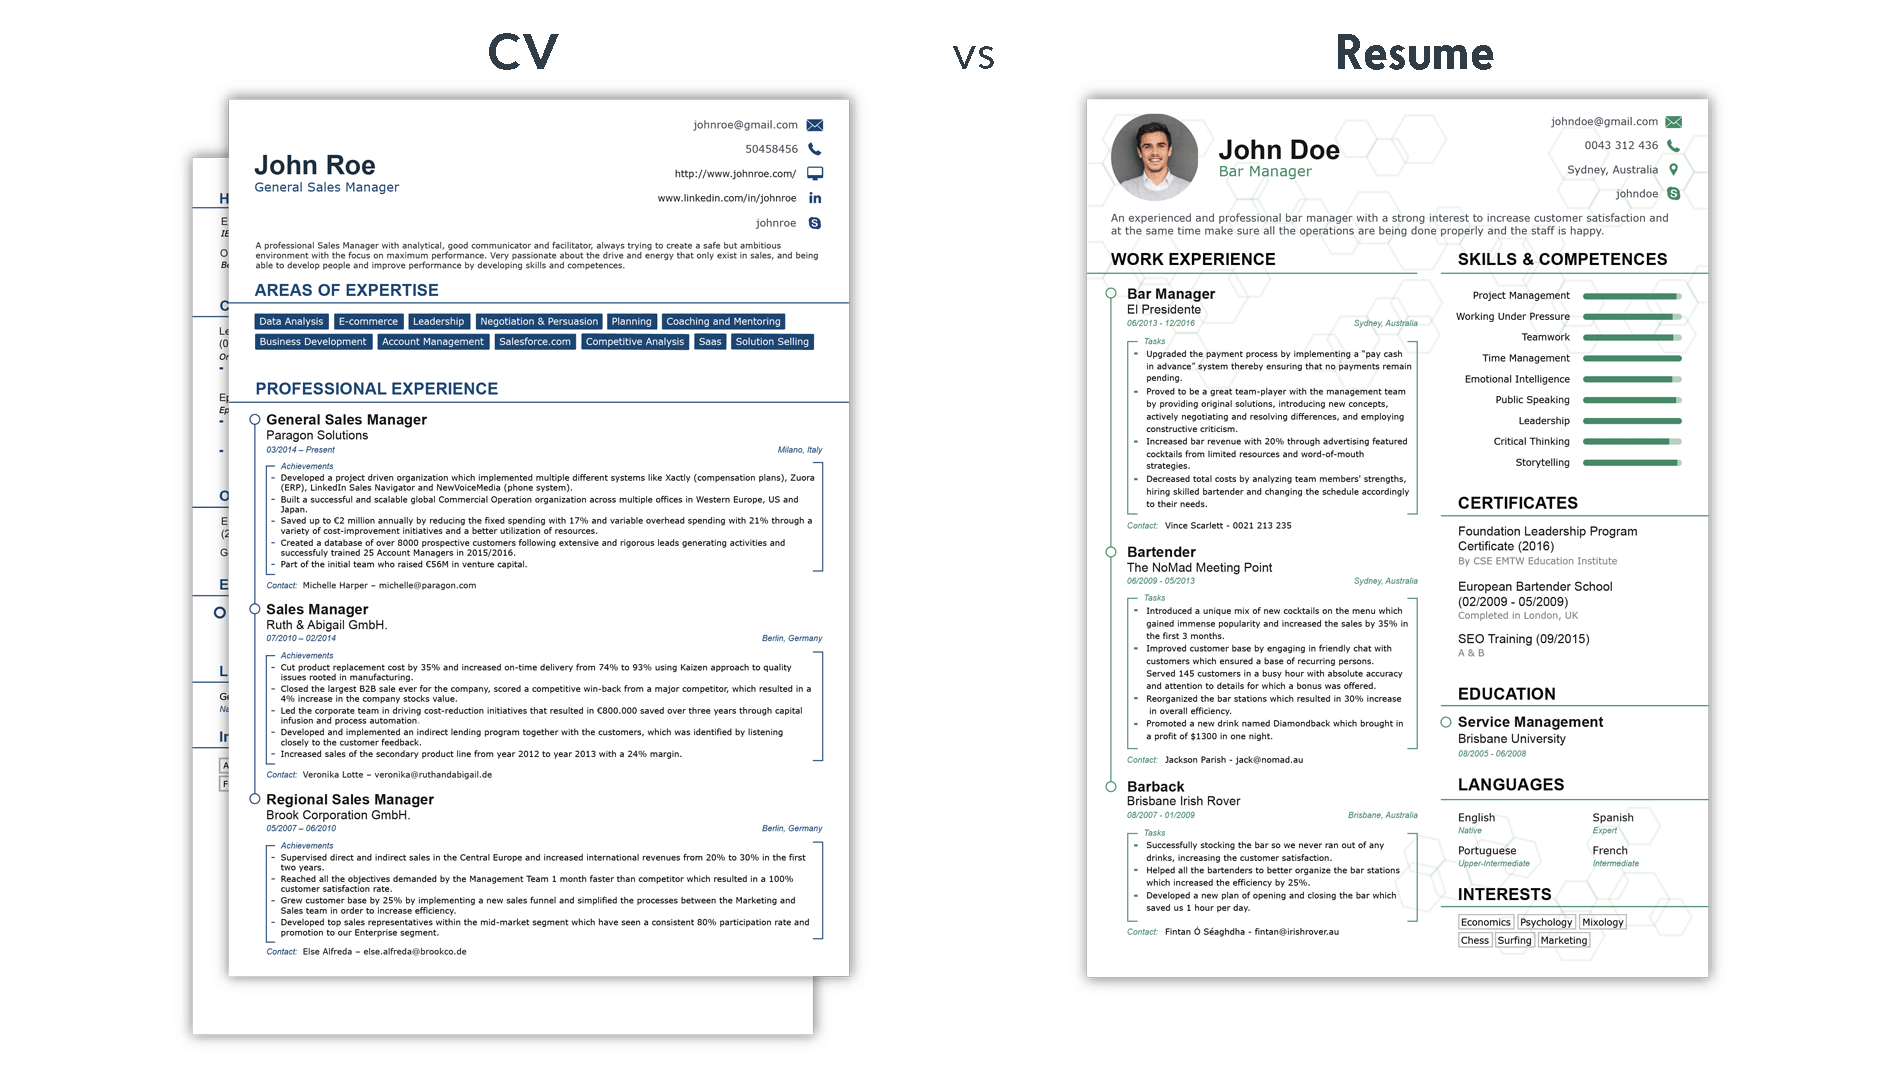 curriculum vitae vs resume - How To Create A Resume